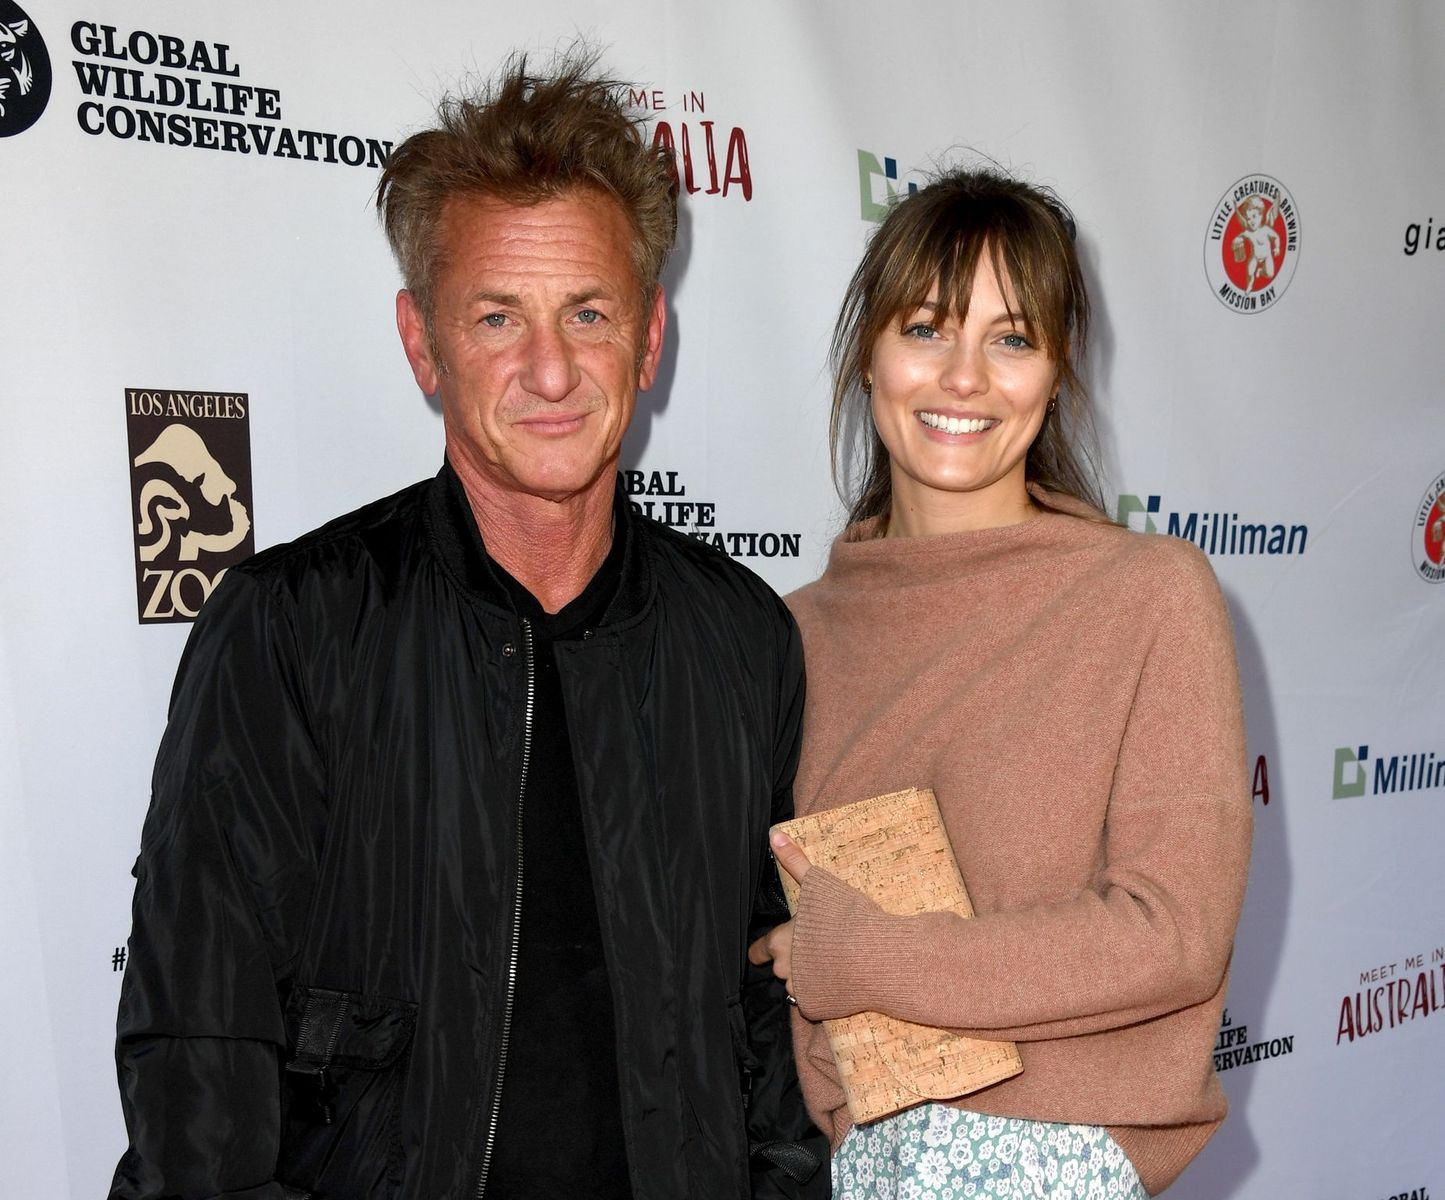 """Sean Penn and Leila Georgeat the """"Meet Me In Australia"""" event benefiting Australia Wildfire Relief Efforts at Los Angeles Zoo on March 08, 2020, in California 